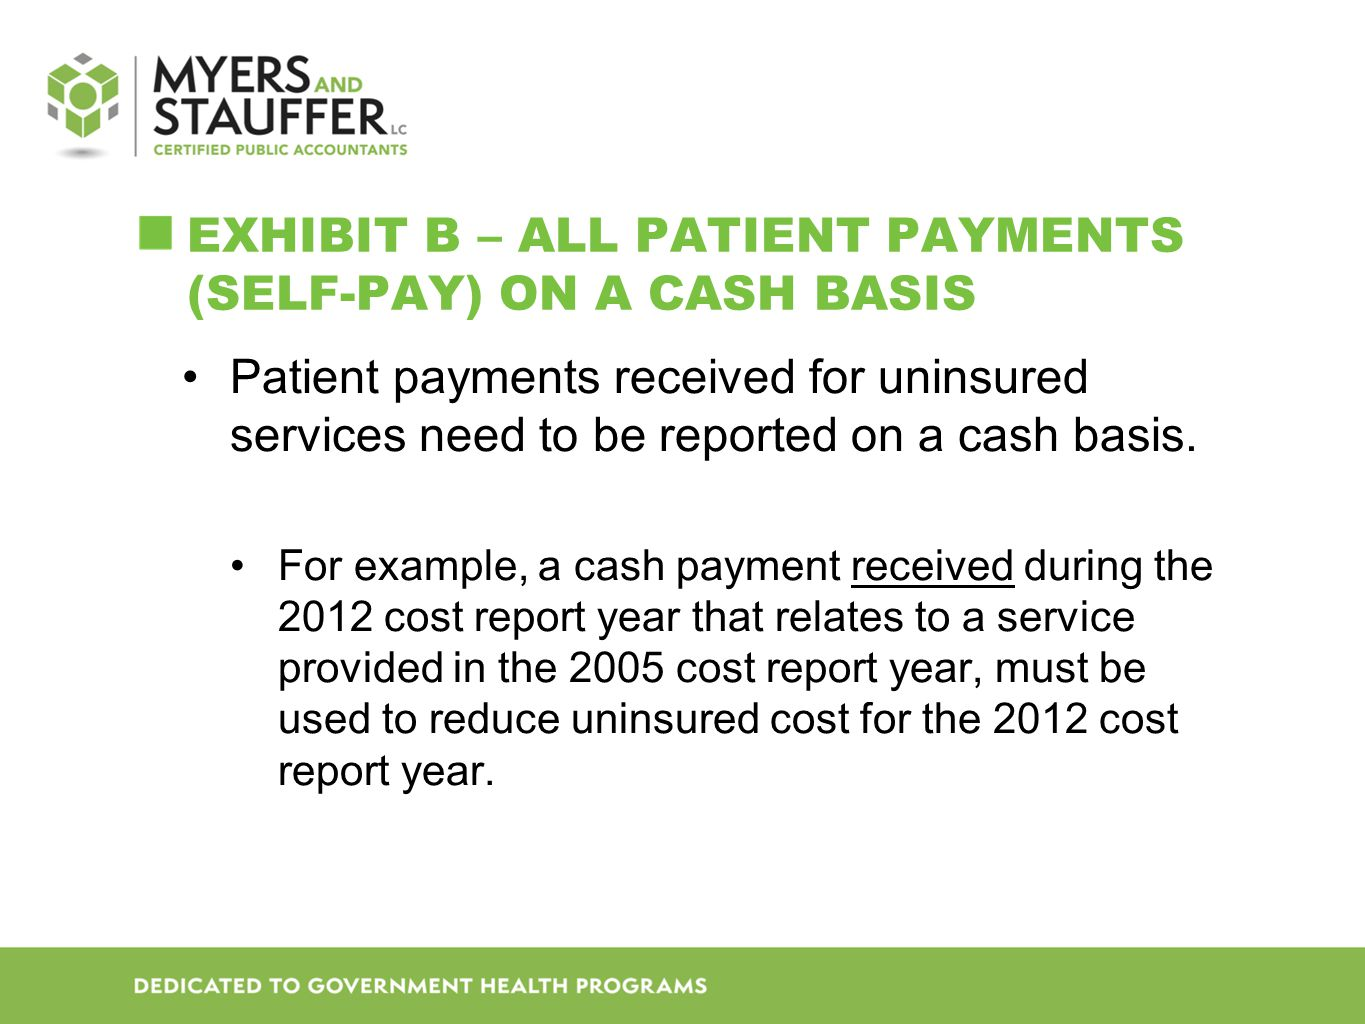 Exhibit B – All Patient Payments (Self-Pay) on a Cash Basis